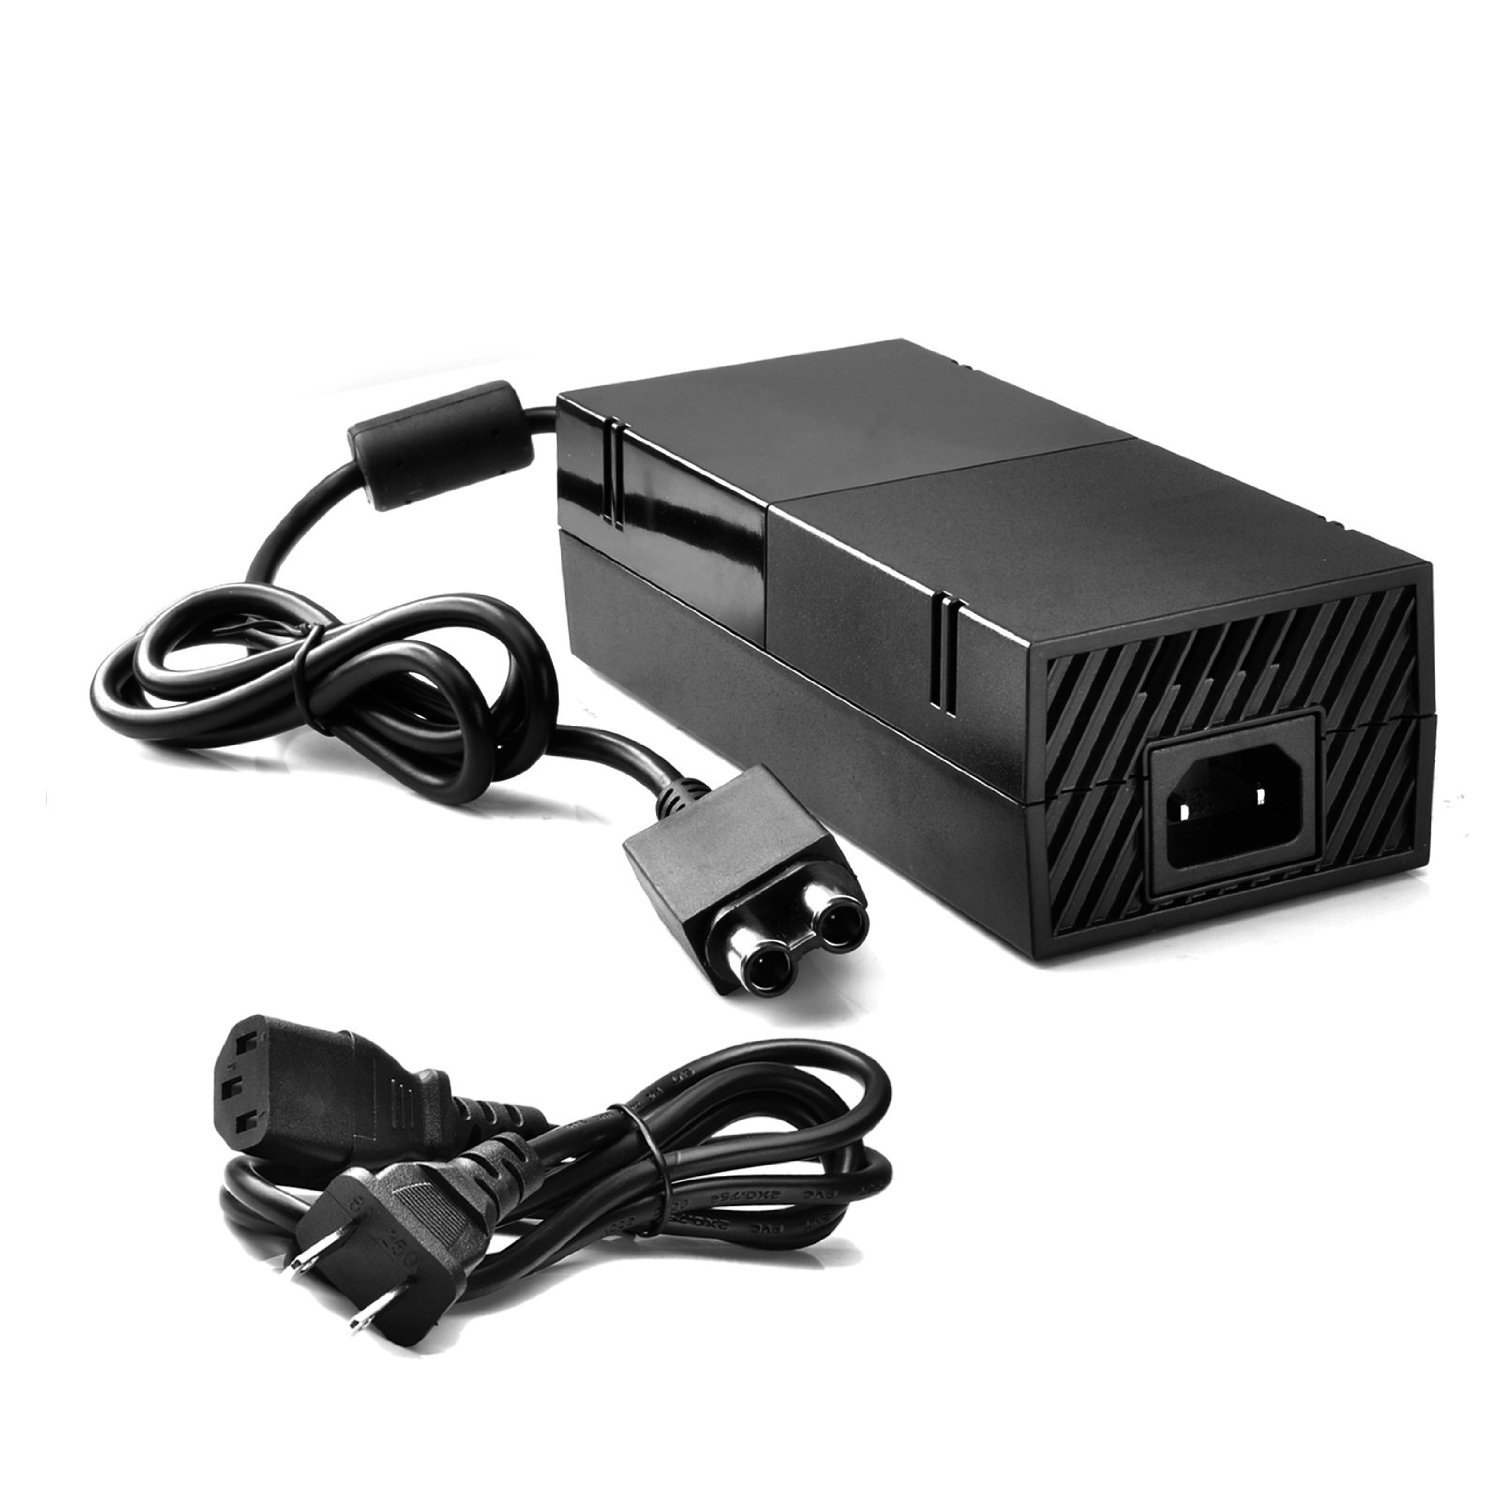 3rd Party Power Supply